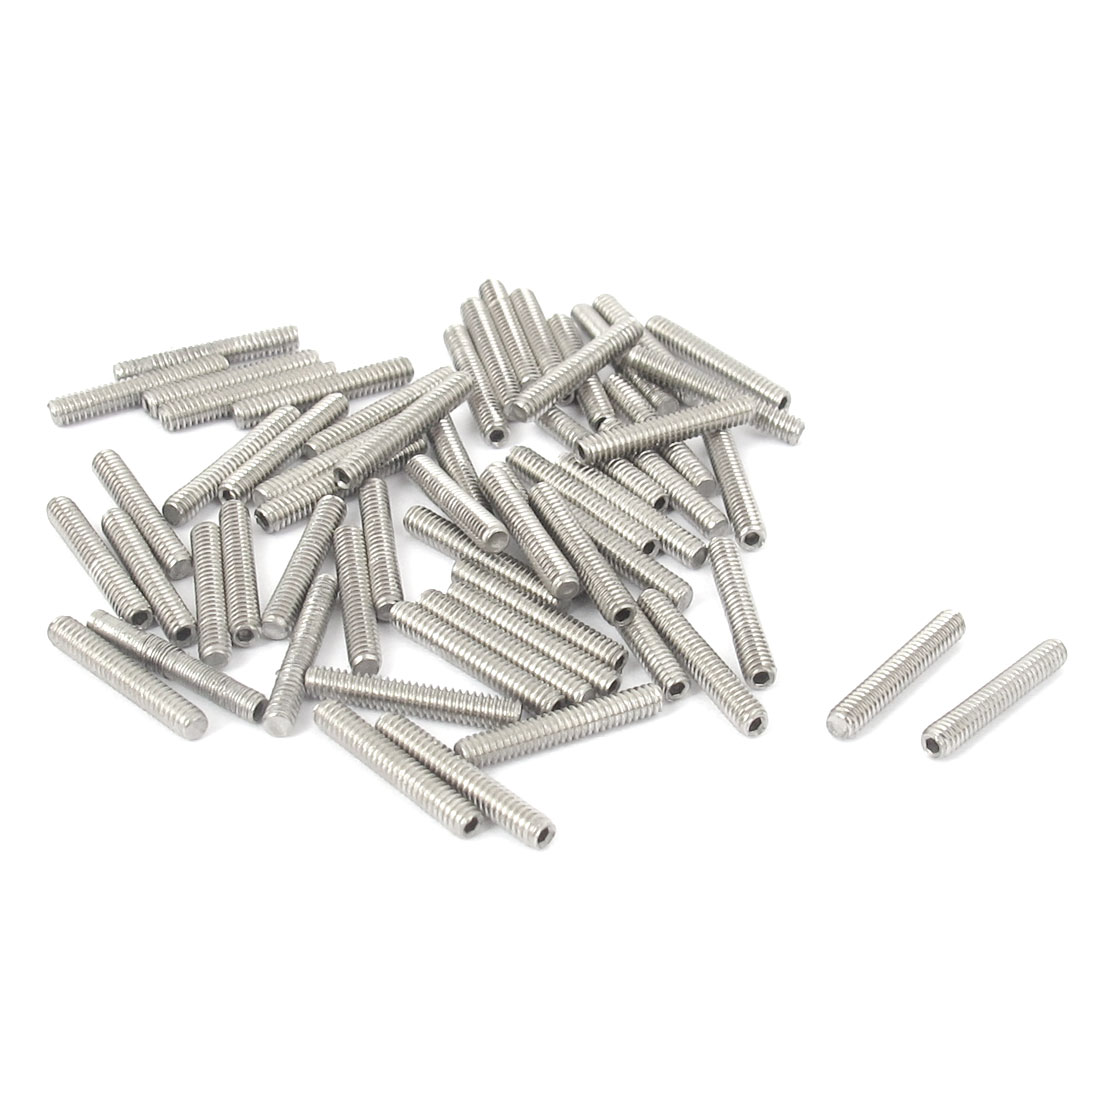 M2x12mm Stainless Steel Hex Socket Set Cap Point Grub Screws Silver Tone 50pcs